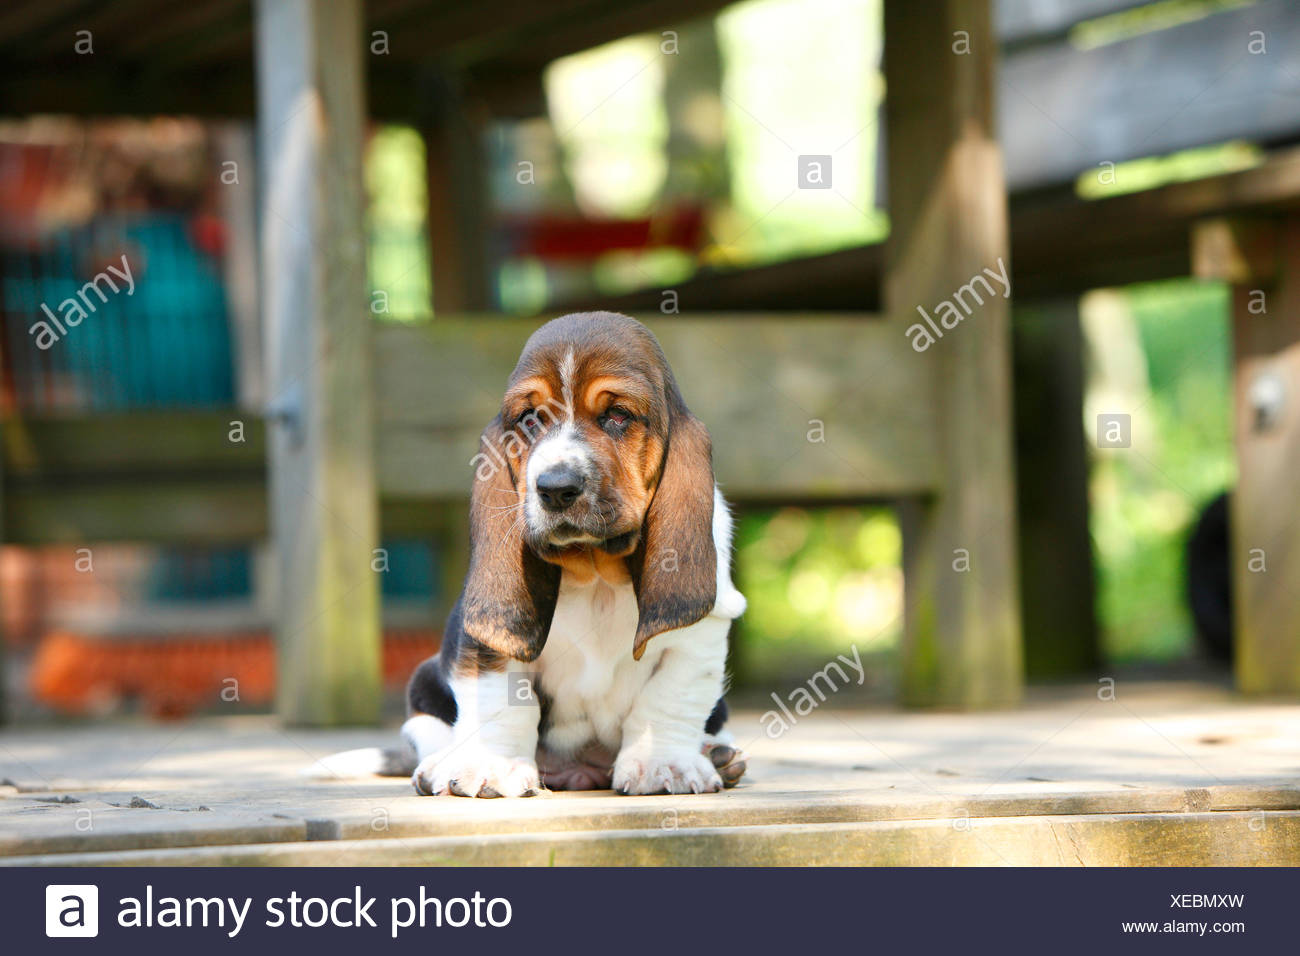 Basset Hound (Canis lupus f. familiaris), puppy sitting on a terrace, Germany - Stock Image